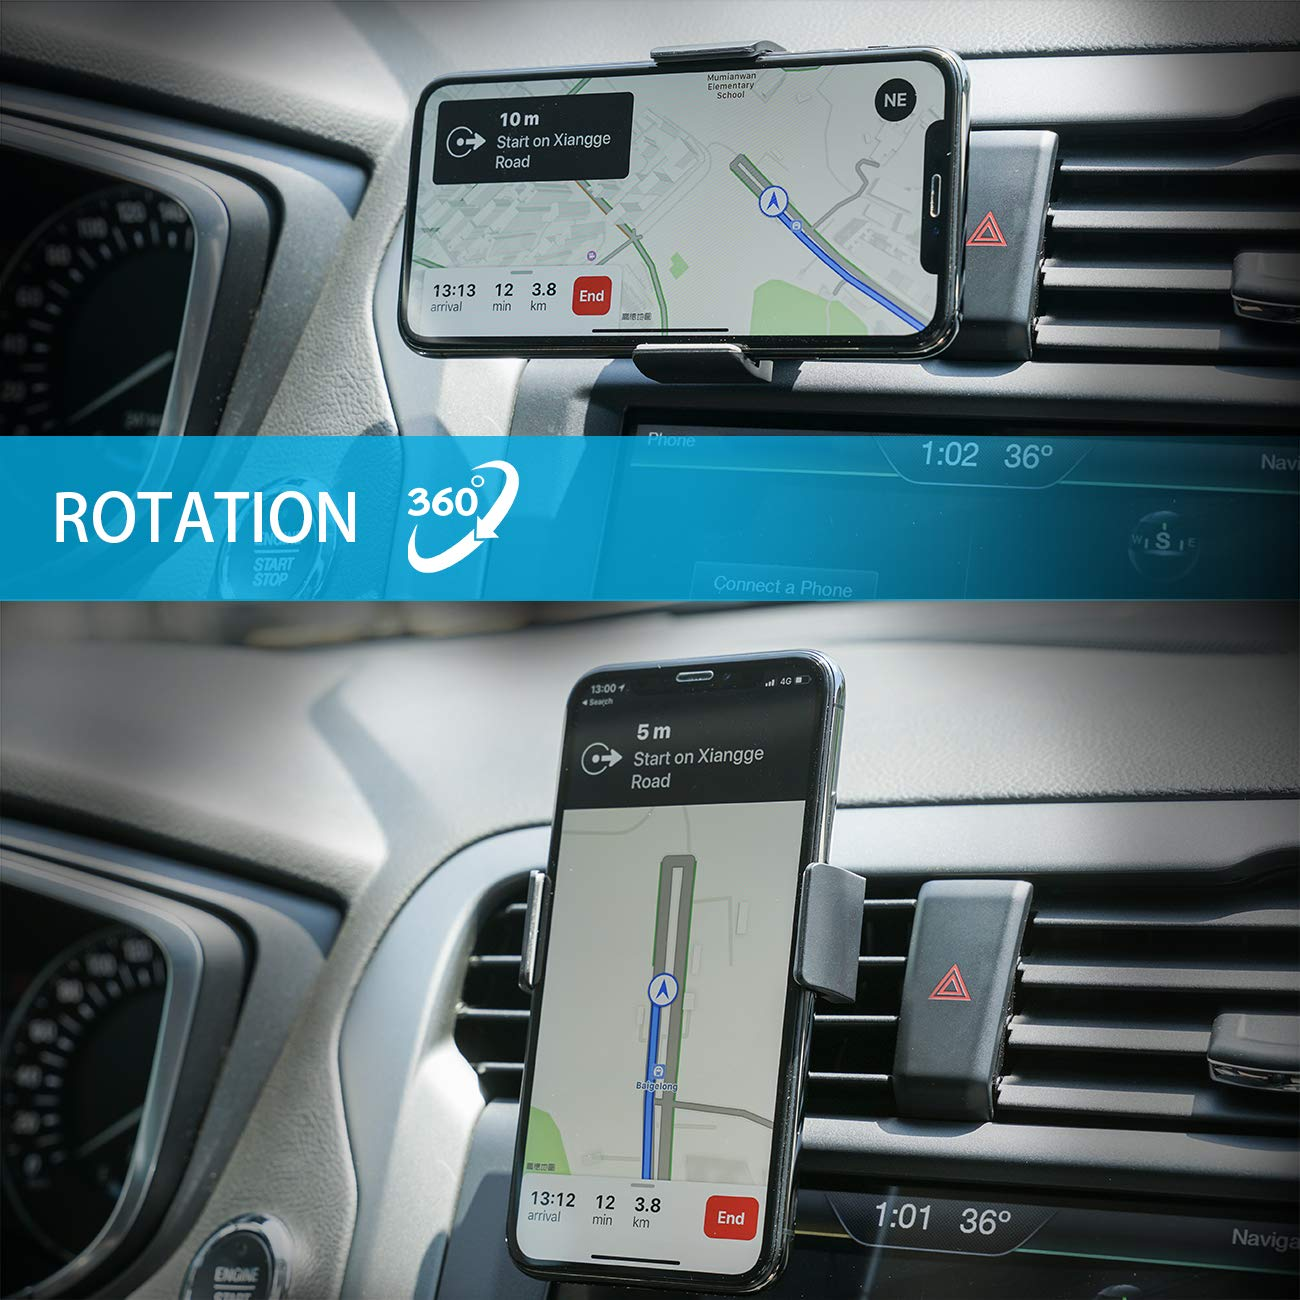 Car Phone Mount, Lamicall Car Vent Holder : Universal Stand Cradle Holder Compatible with Phone Xs Max XR 8 X 8P 7 7P 6S 6P 6, Samsung Galaxy S5 S6 S8 S9 S8+ S9+, Google, LG, Huawei, Other Smartphone by Lamicall (Image #3)